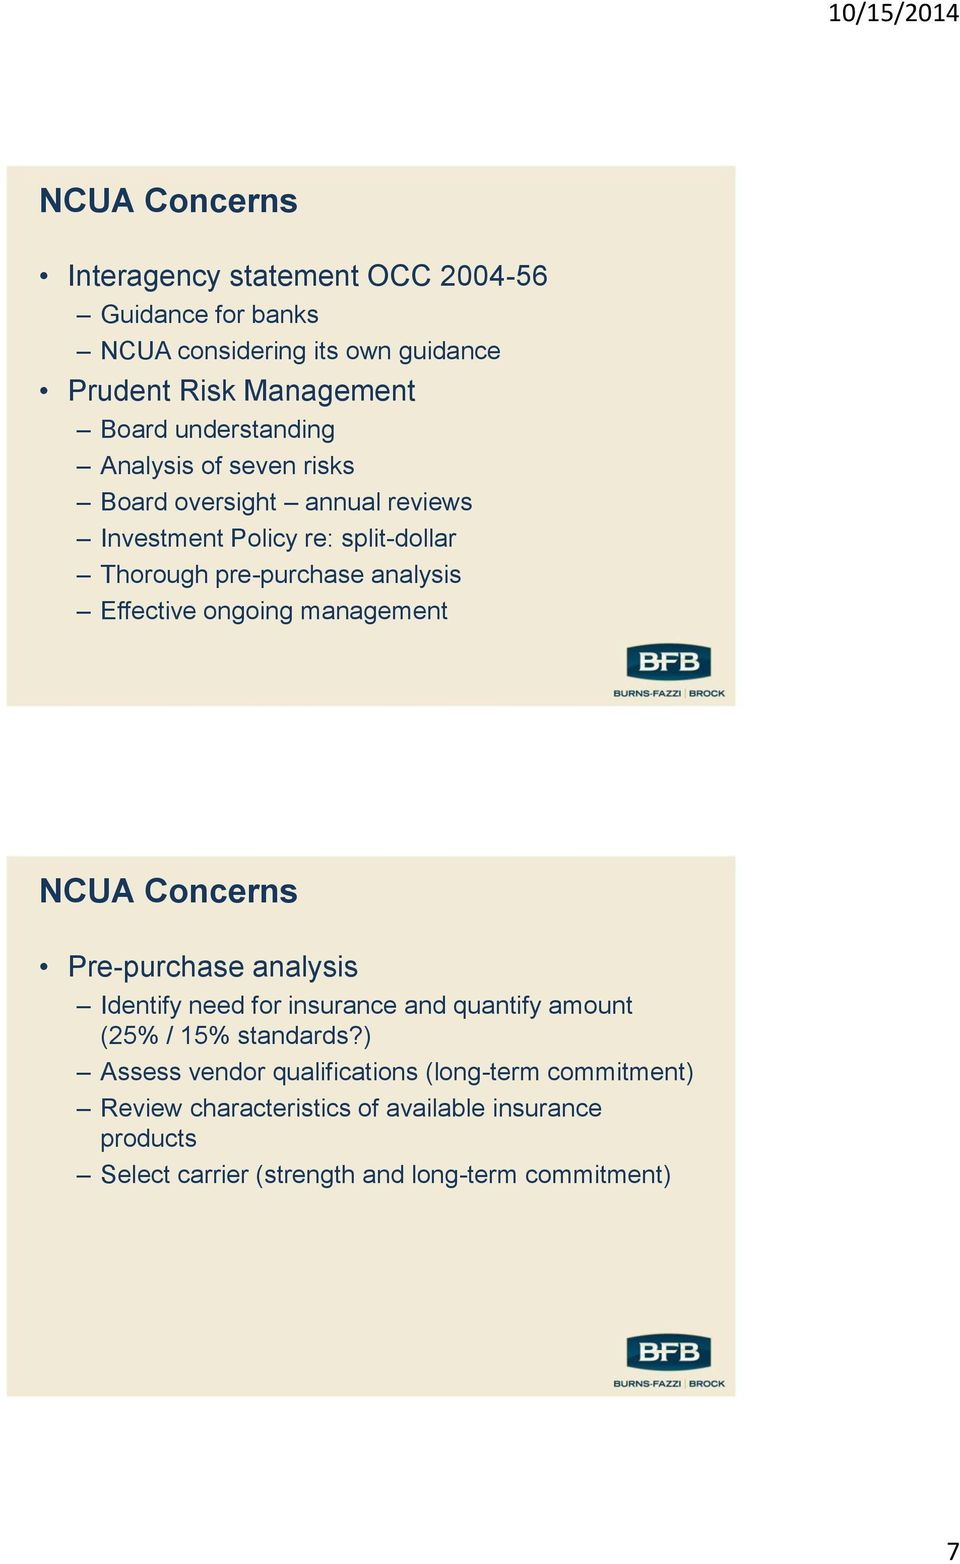 Effective ongoing management NCUA Concerns Pre-purchase analysis Identify need for insurance and quantify amount (25% / 15% standards?